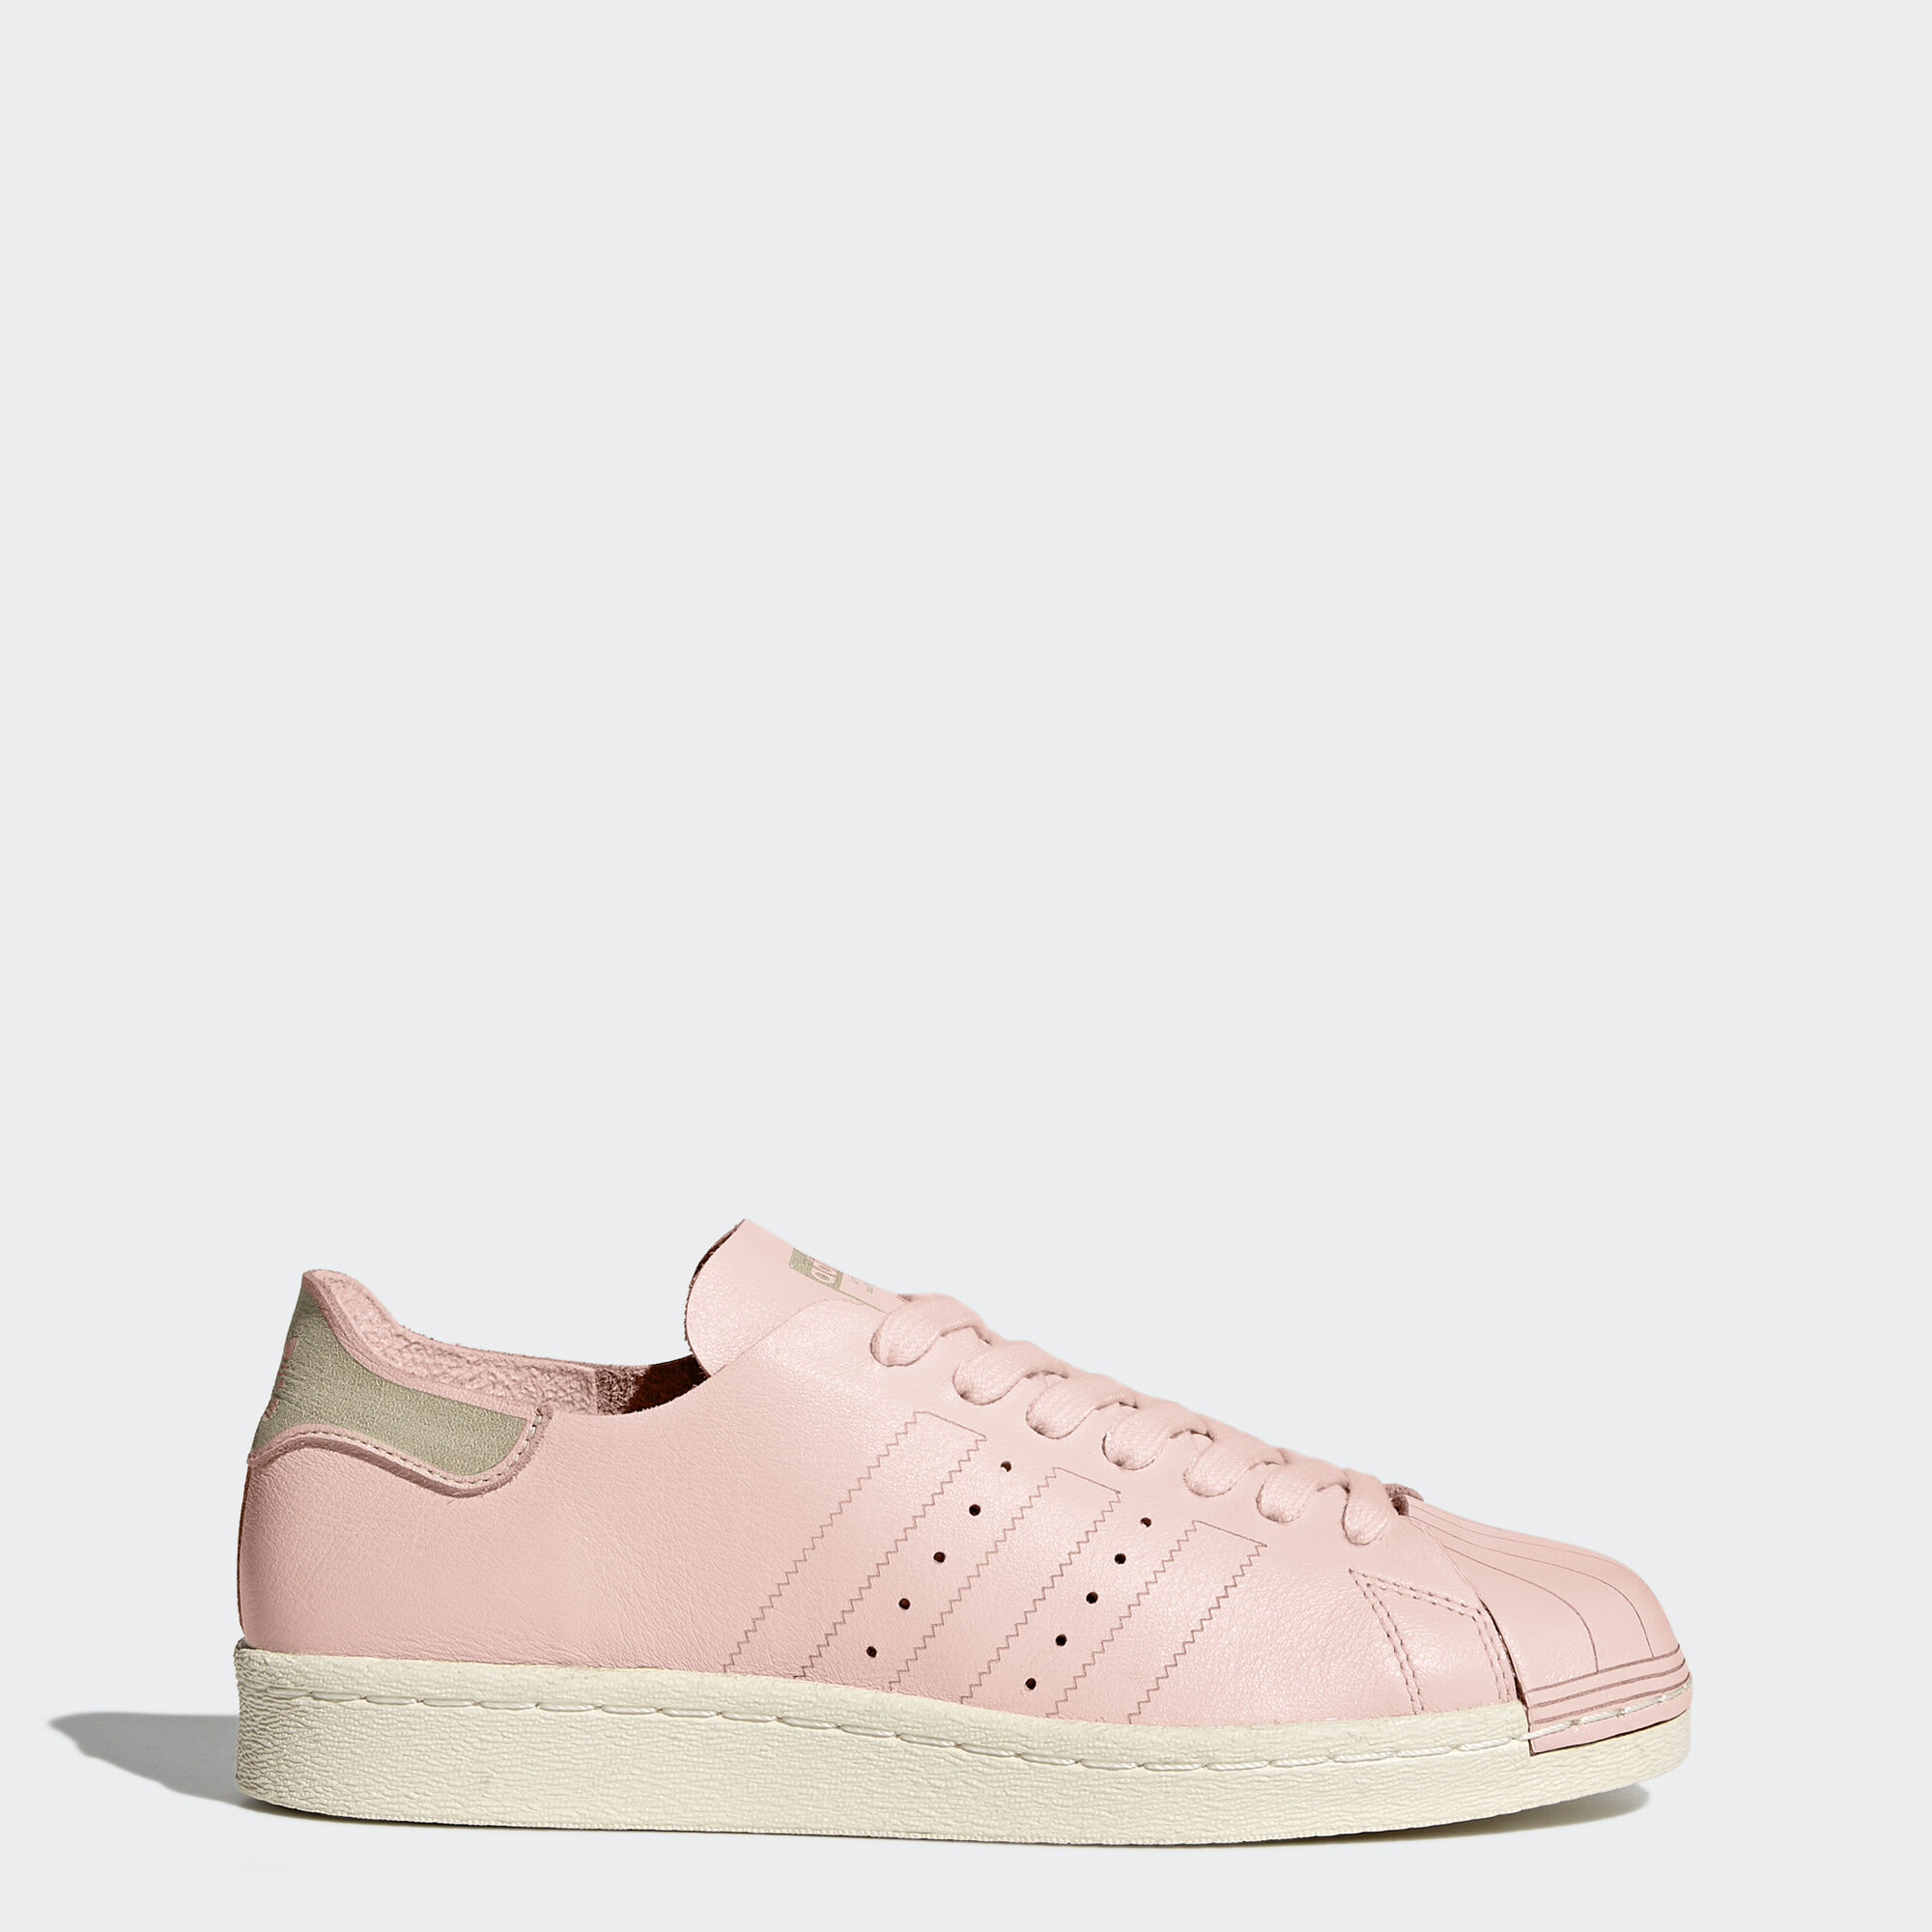 adidas superstar decon